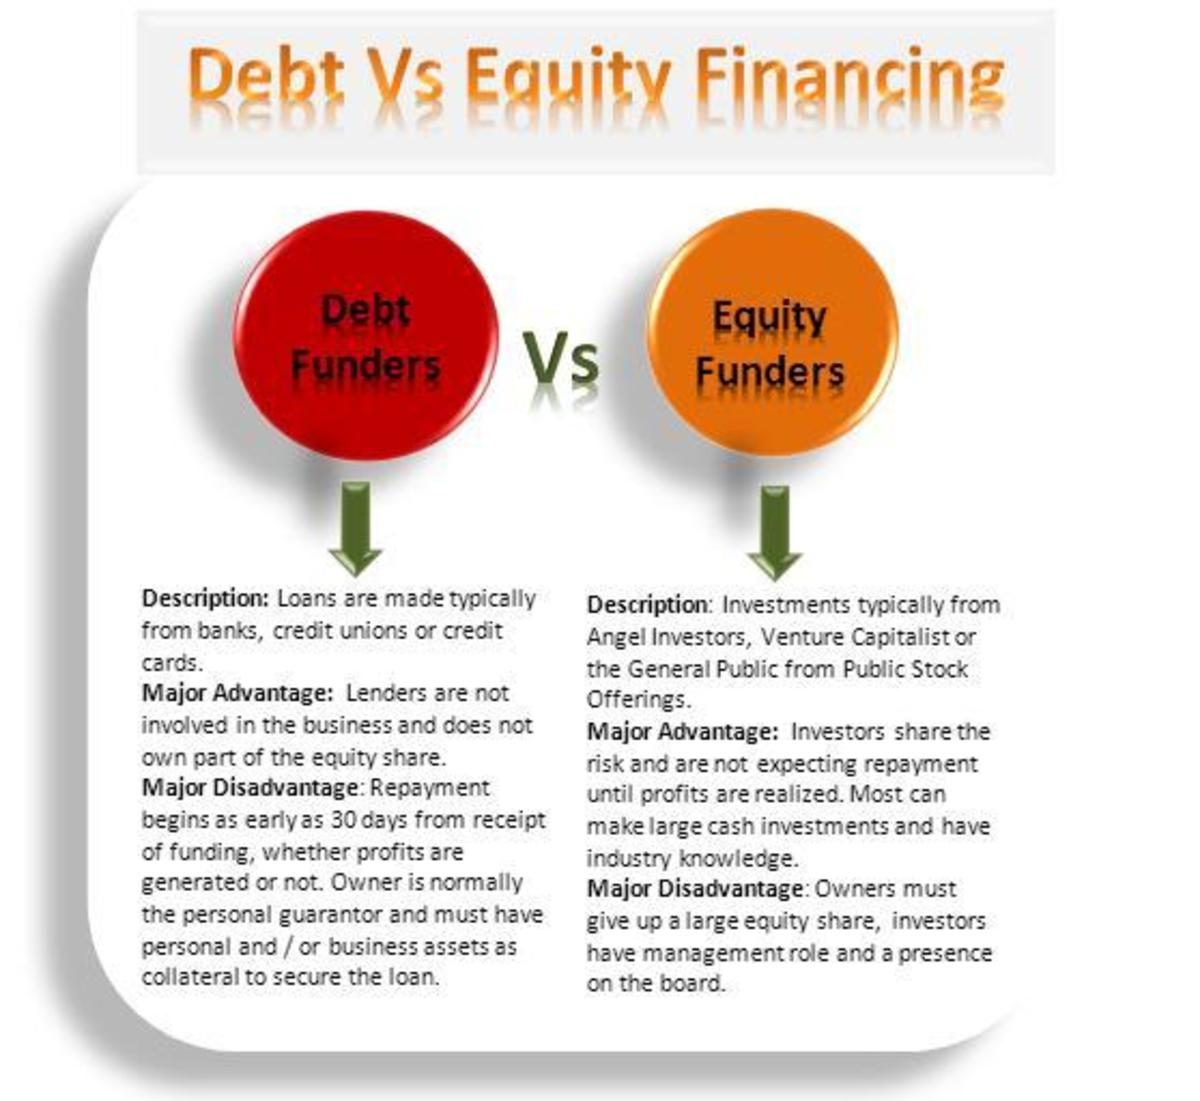 Debt Vs Equity Financing Which Is Best for Your Business